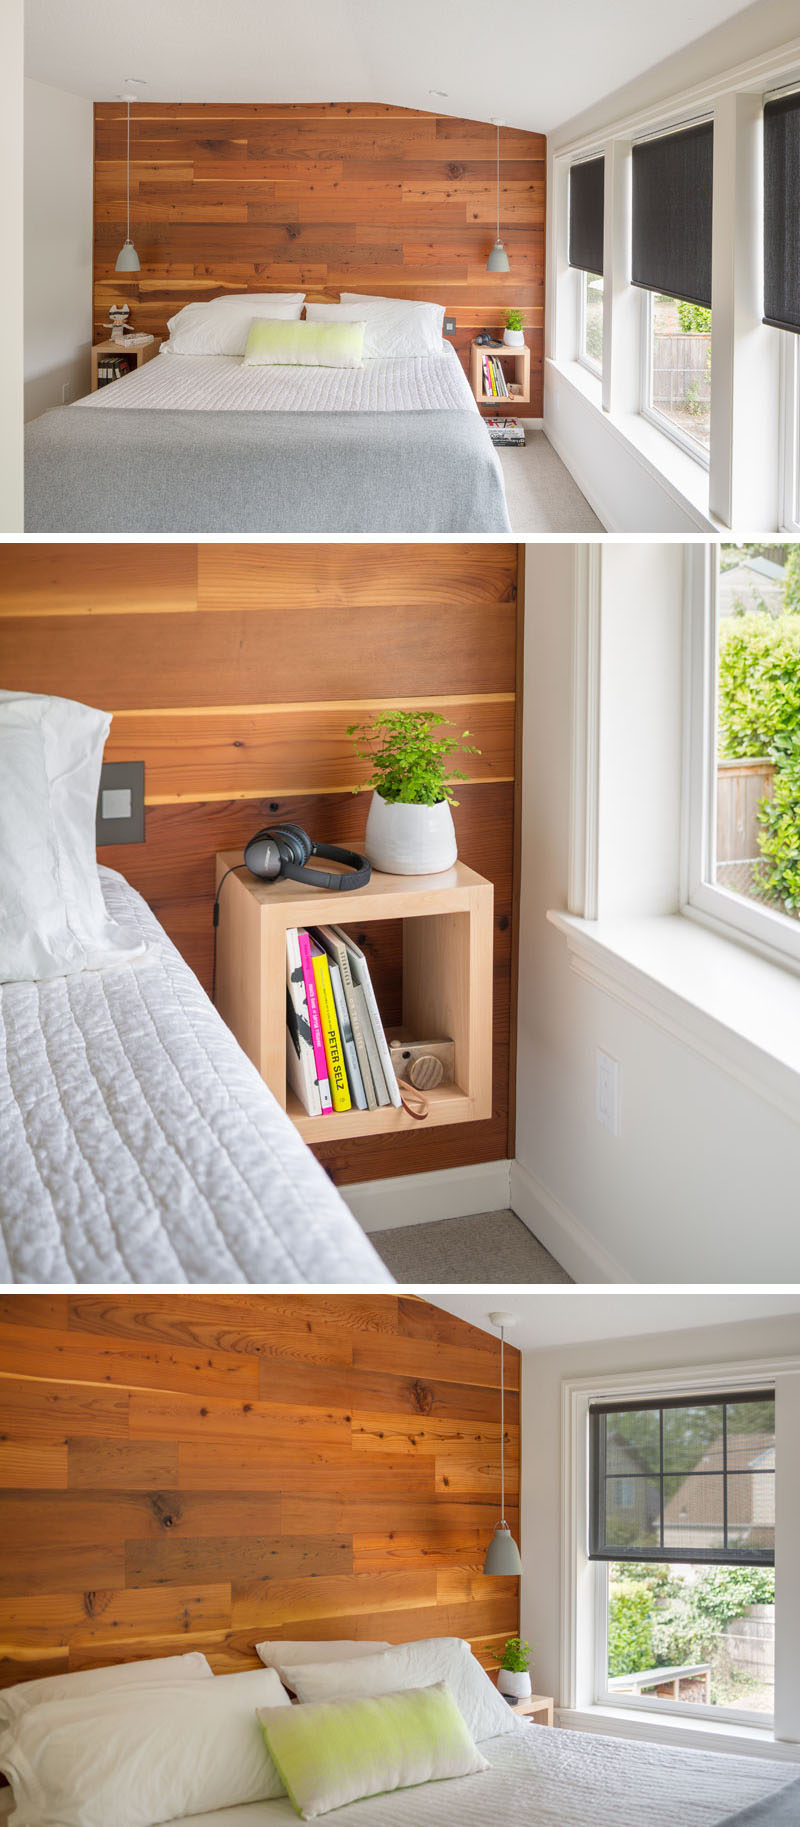 wood-accent-wall-bedroom-090117-1045-04